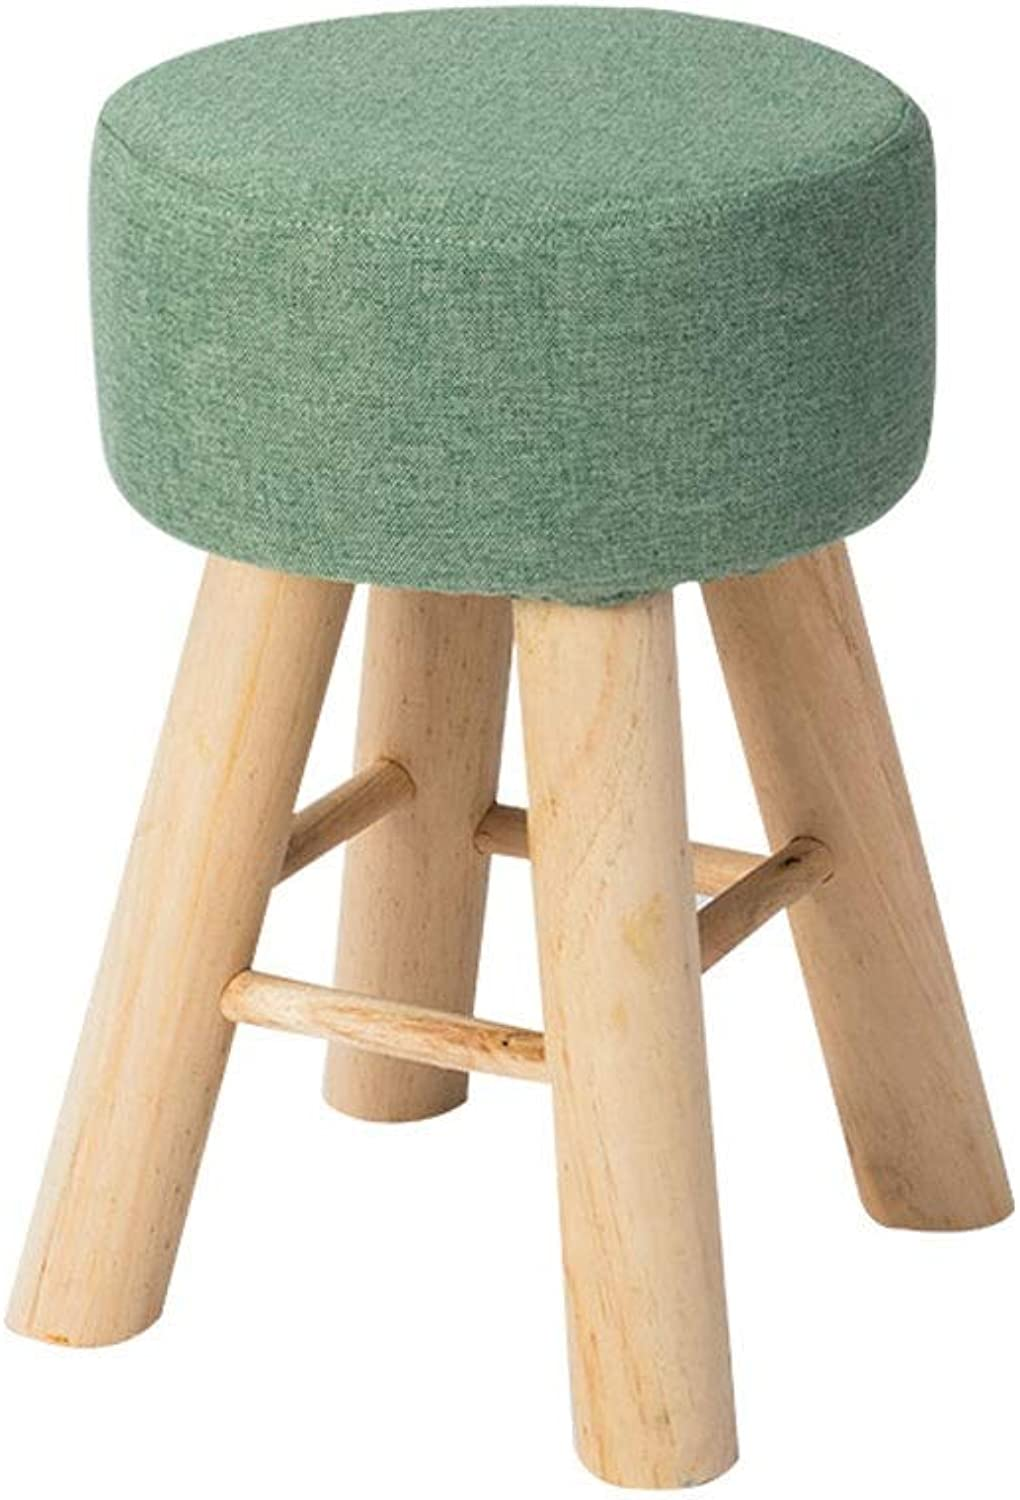 A+ Solid Wood Footstool,Small Bench for Home, Creative Small Chair, Fabric Round Makeup Stool High Rebound Sponge Filling Cushion - 28cmX28cmX43cm (color   Dark Green)